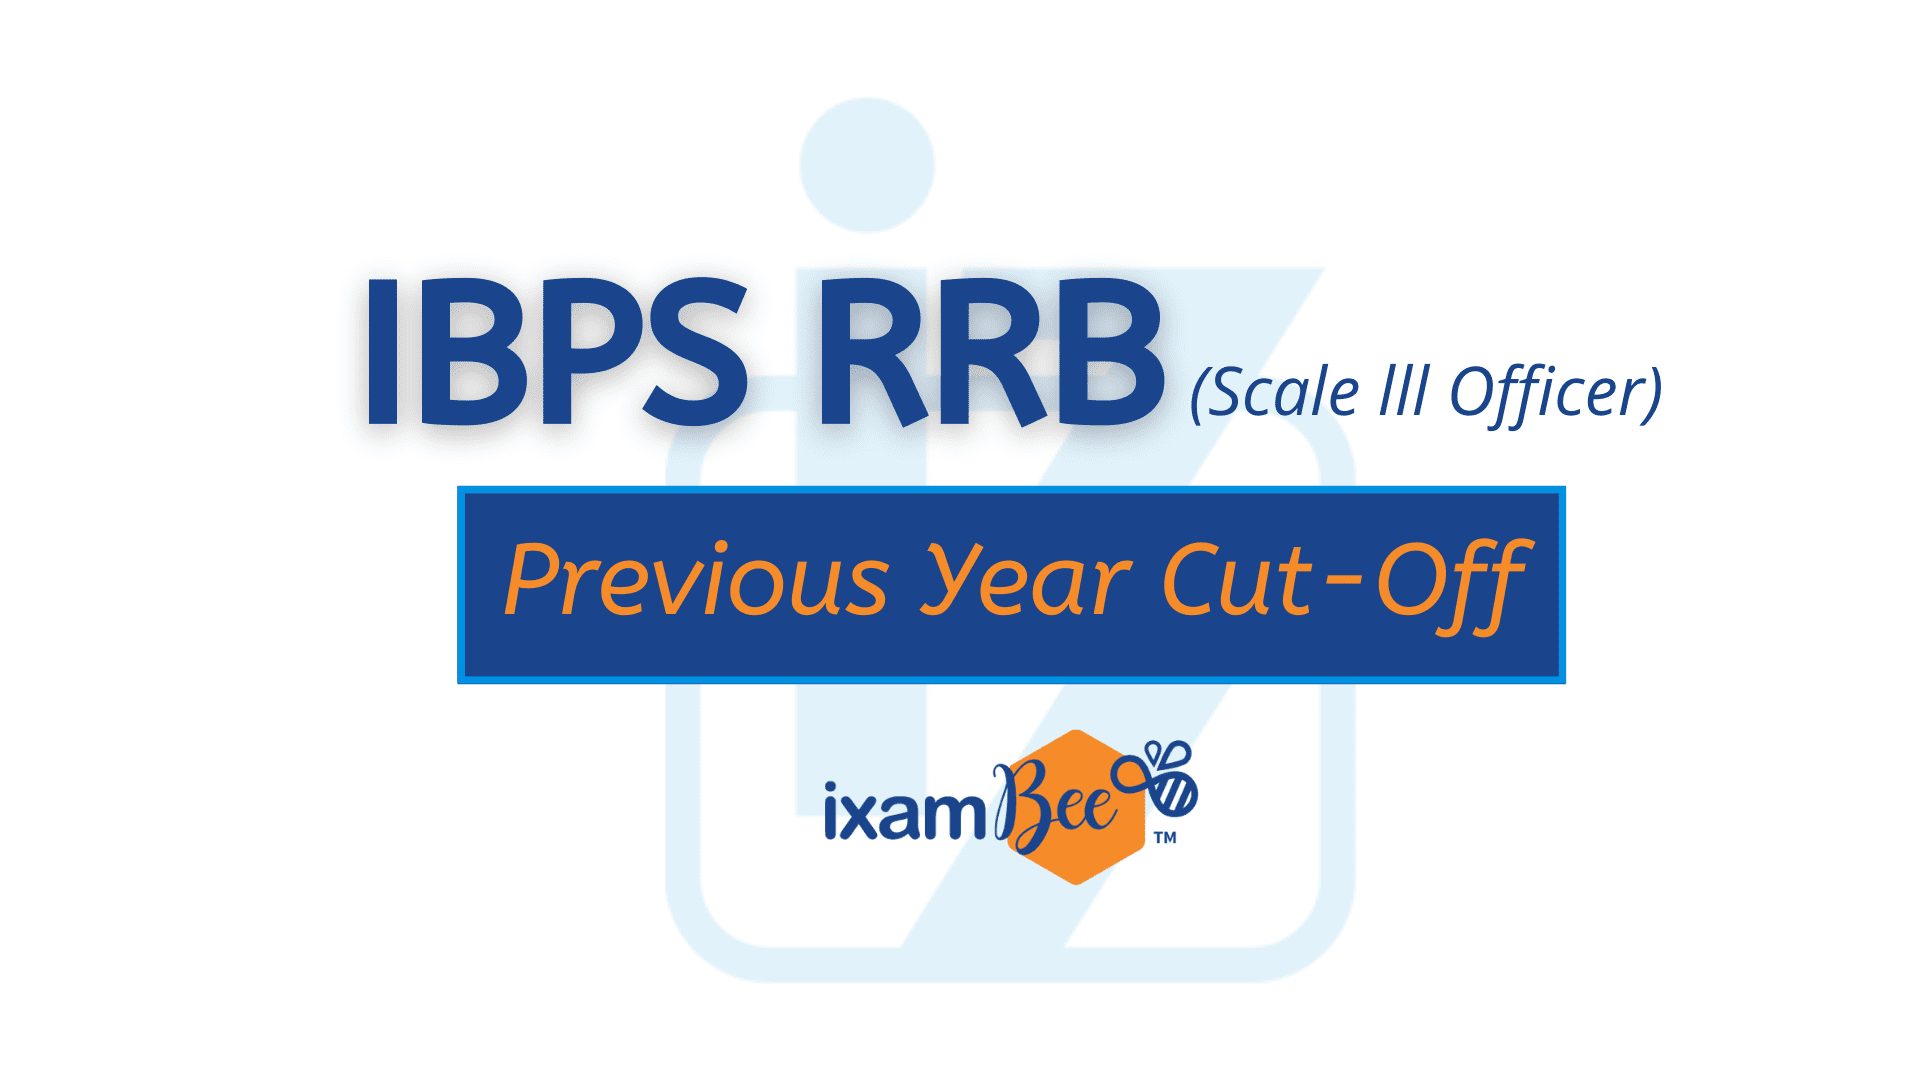 IBPS RRB Officer Scale III Previous Year Cut Off